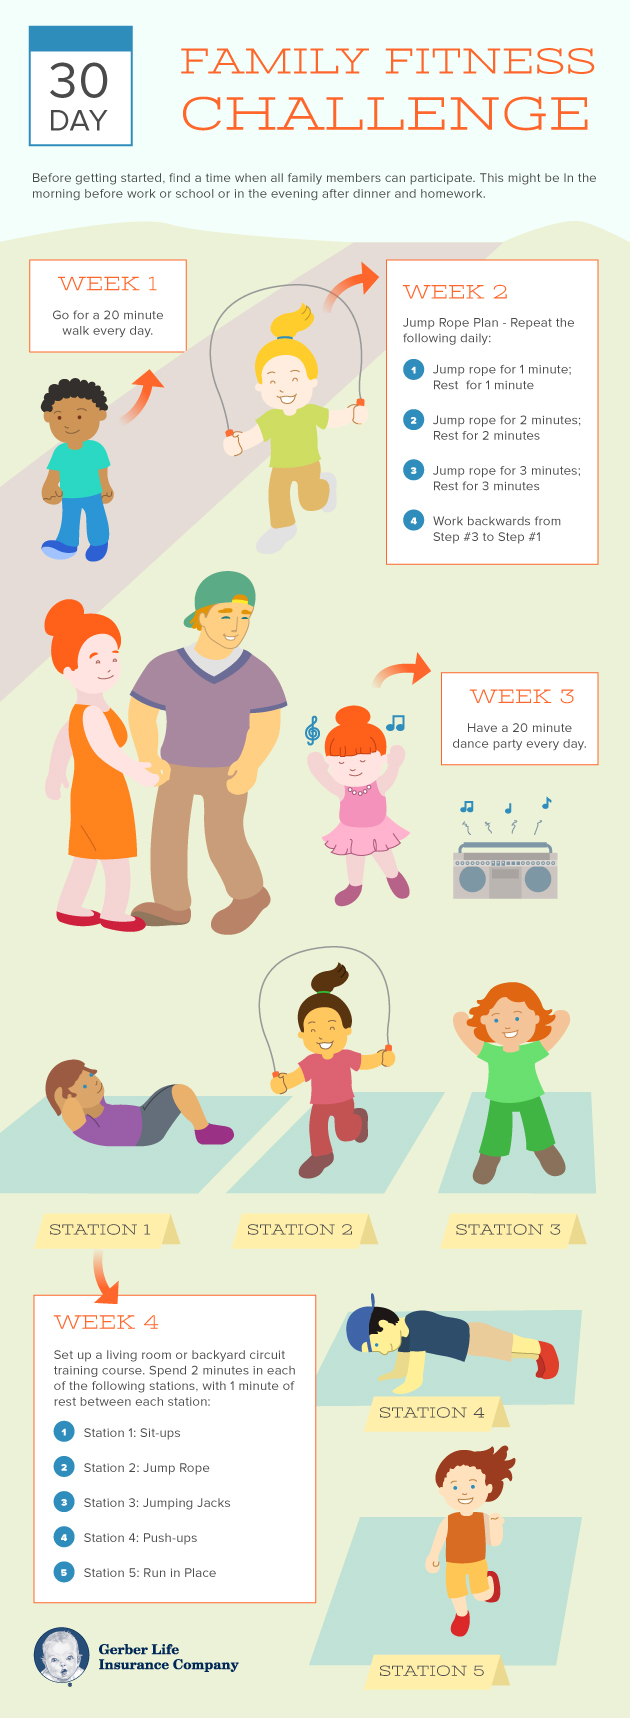 30 Day Family Fitness Challenge.